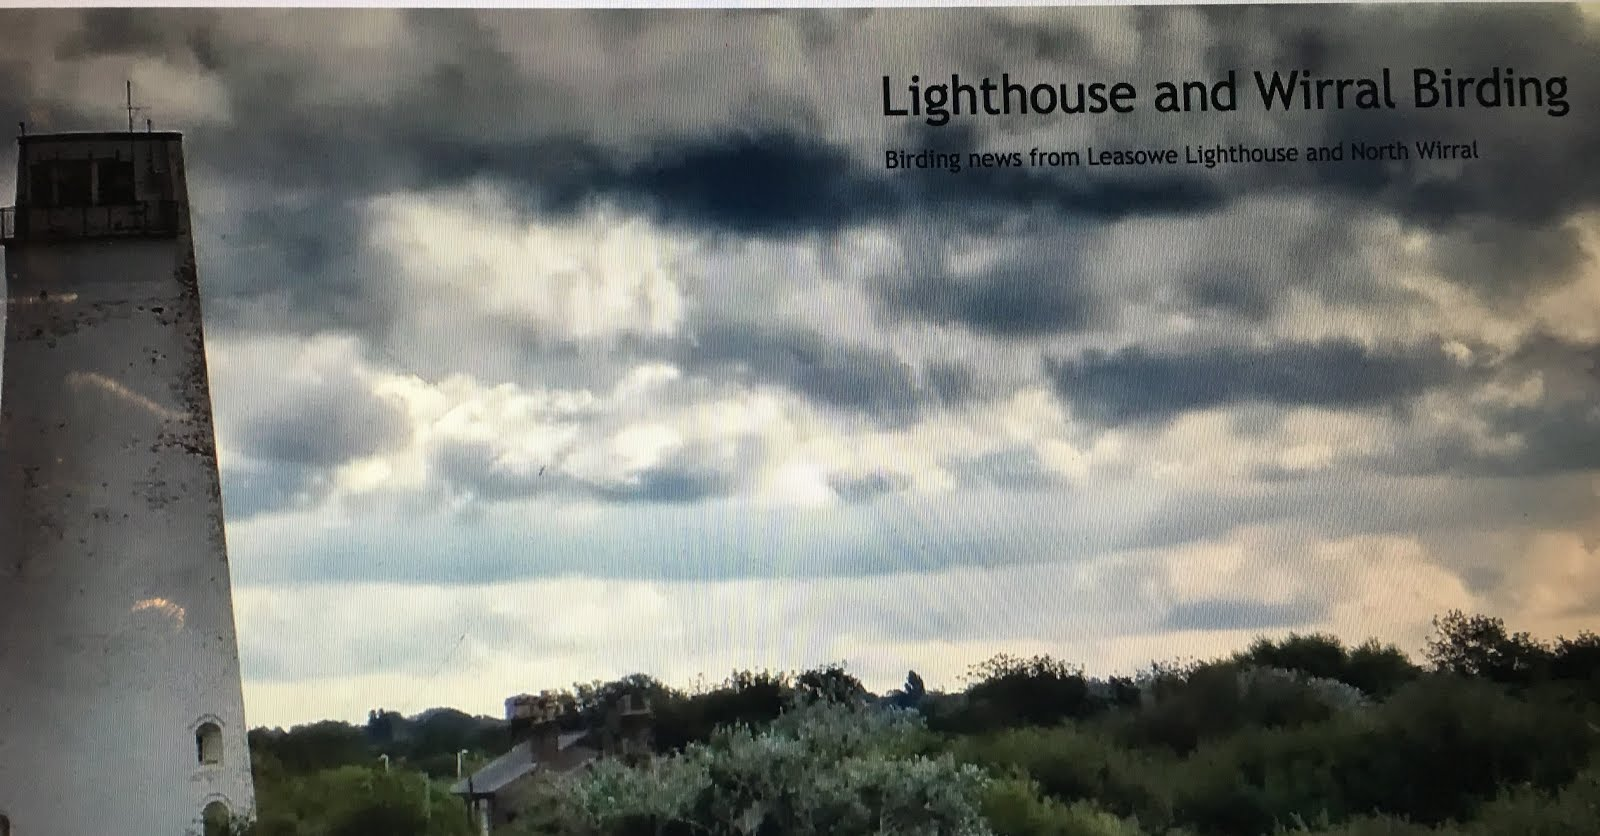 LIGHTHOUSE AND WIRRAL BIRDING